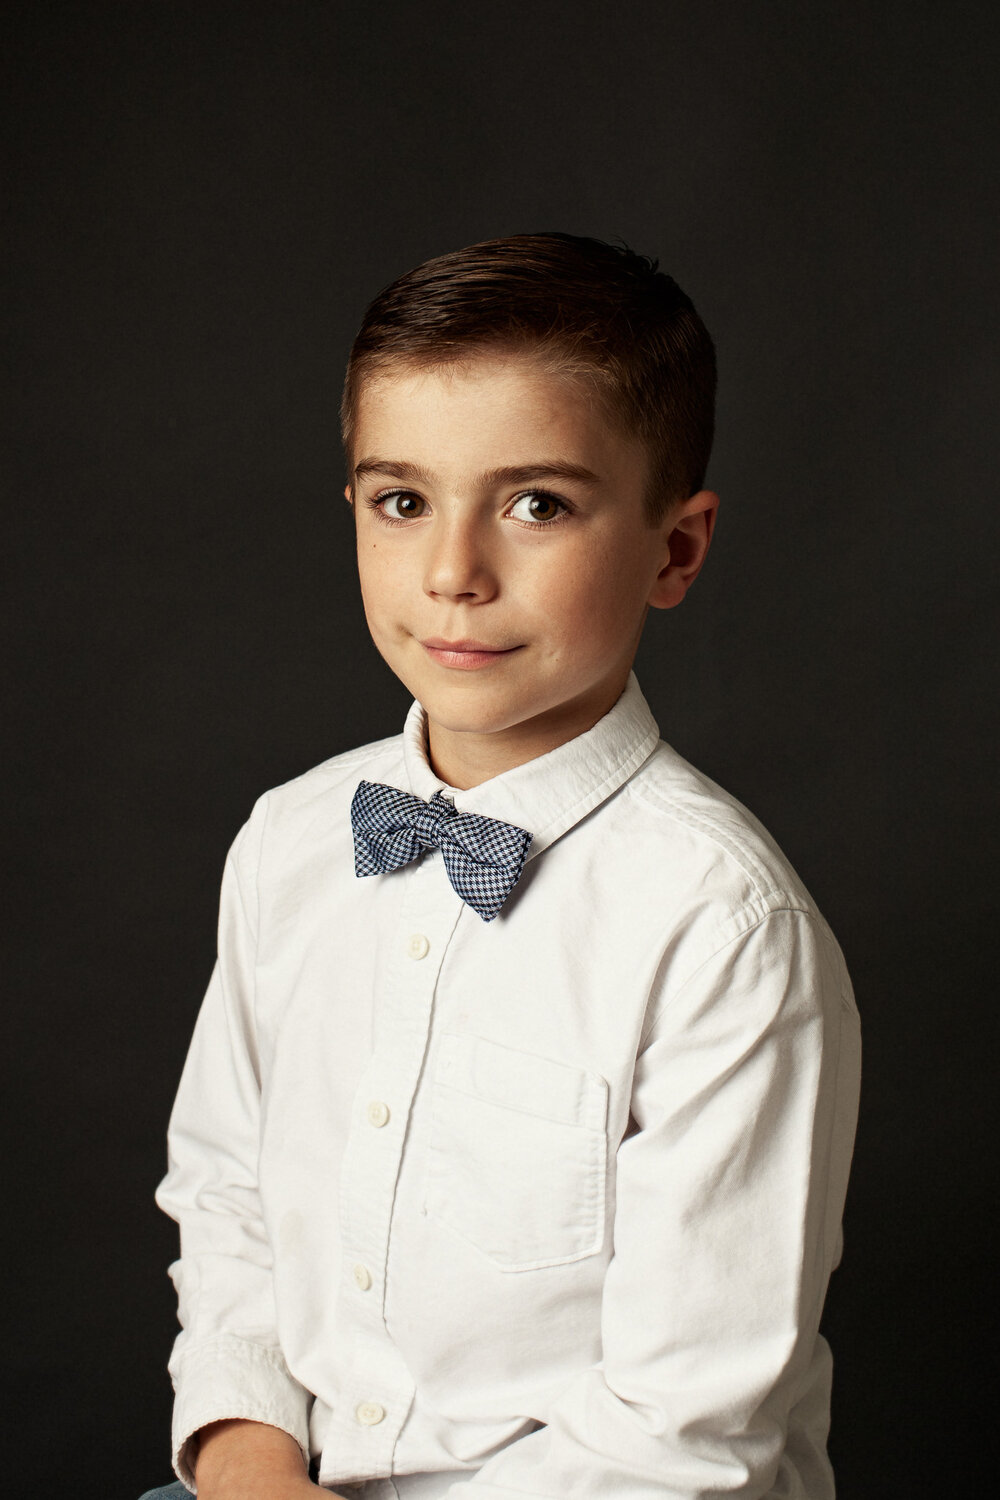 portrait of boy with bowtie sitting new braunfels photography studio